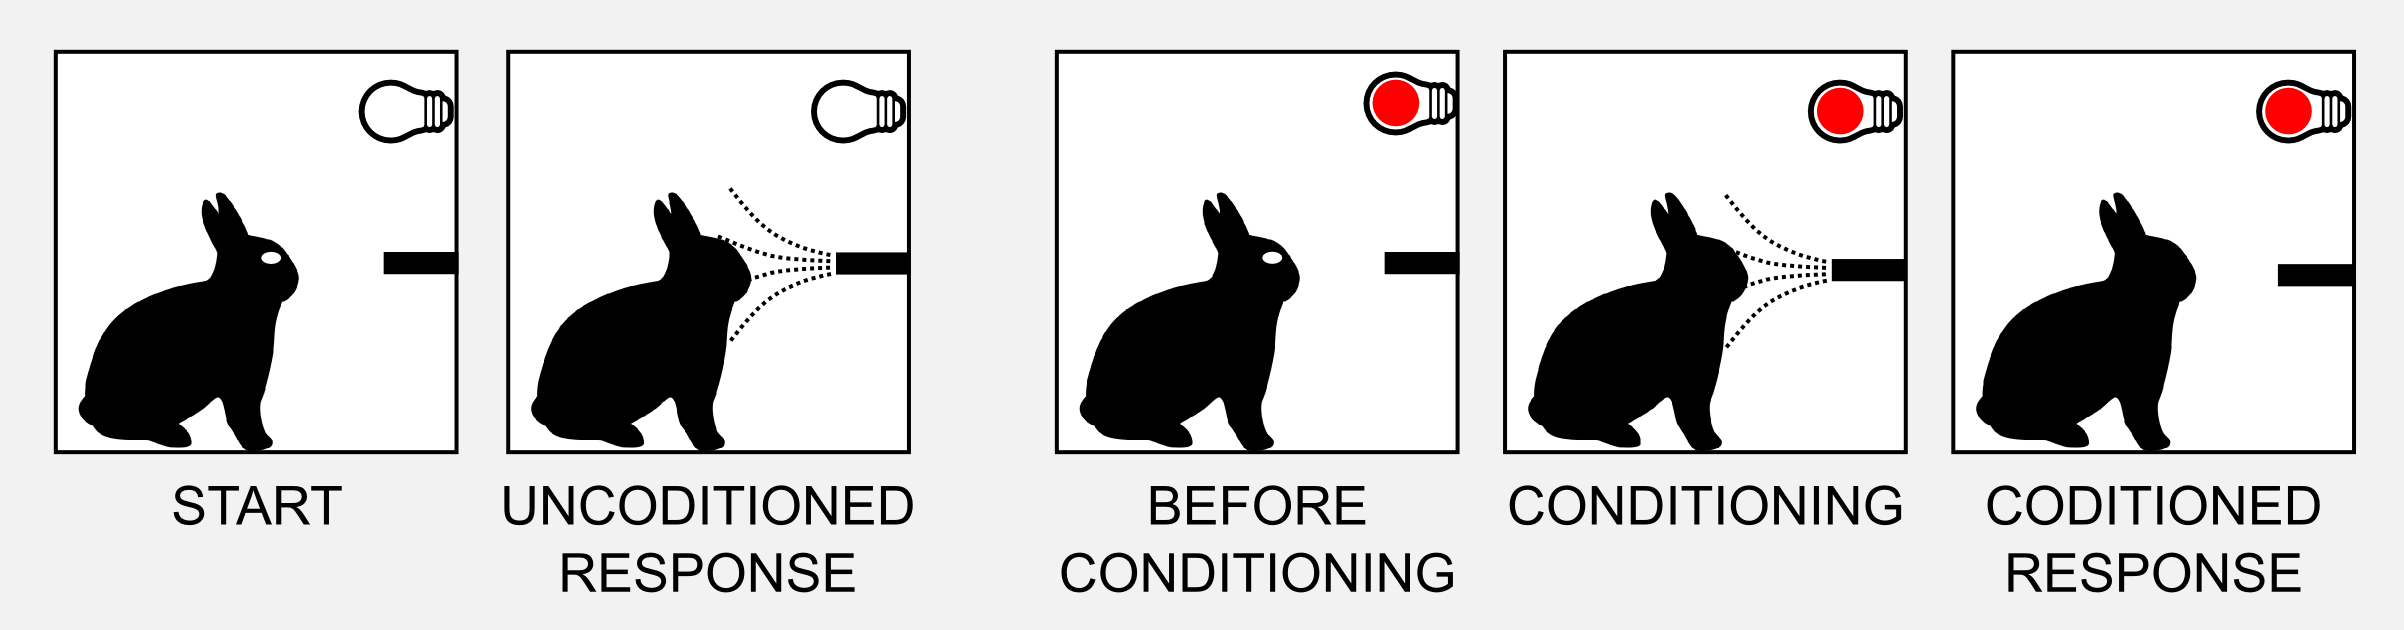 Eyeblinking Conditioning in Rabbits